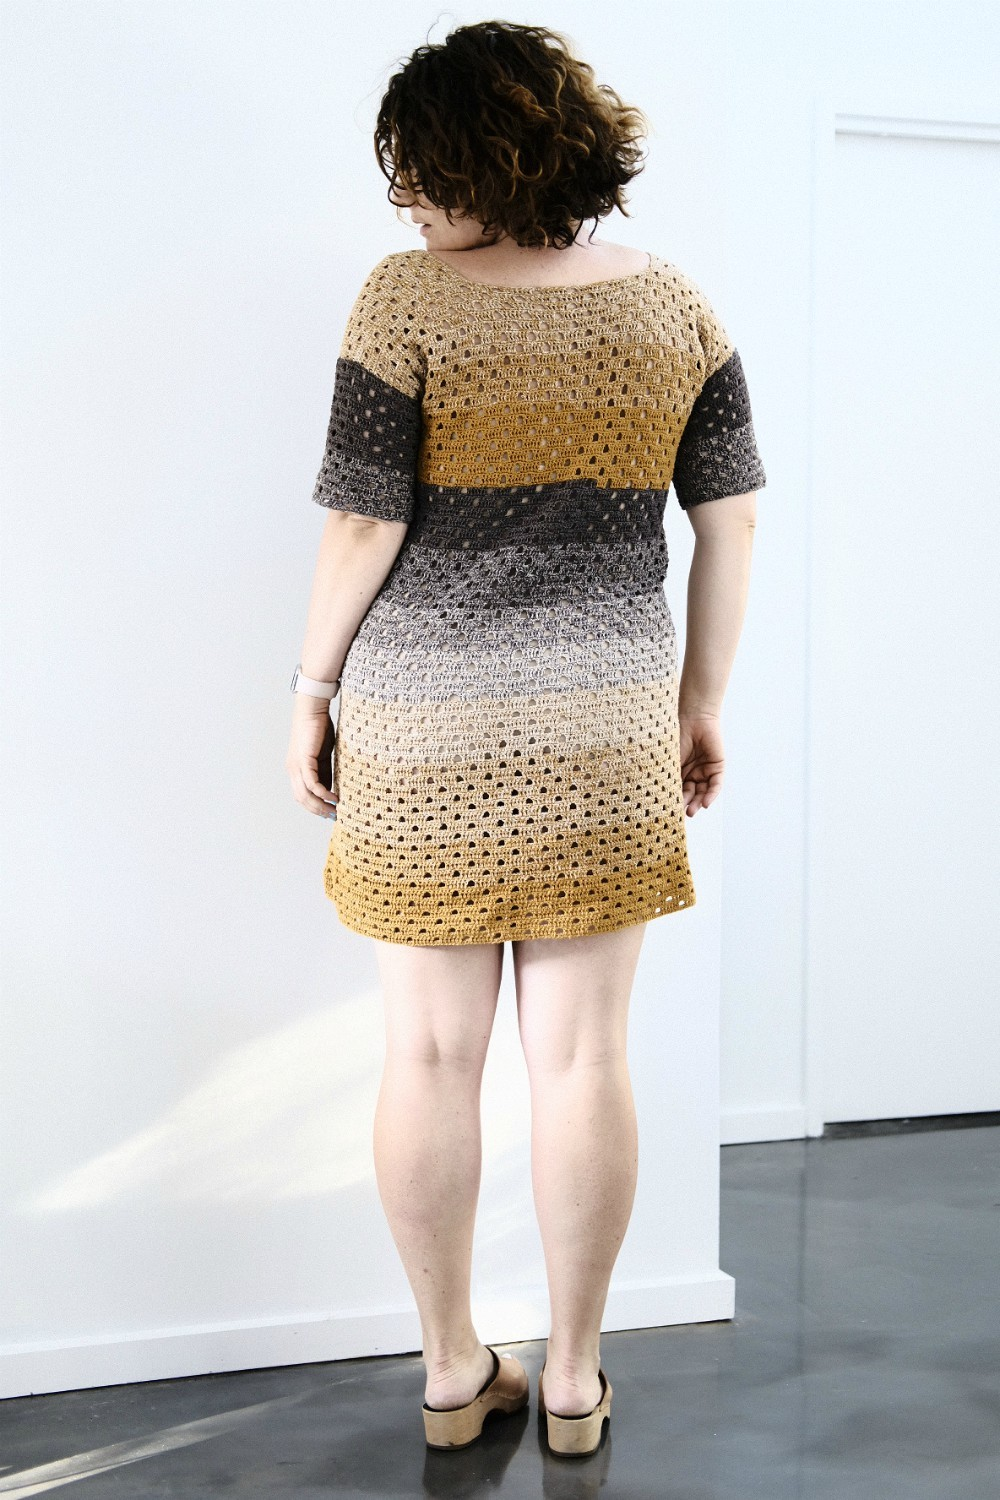 Travel hobby - Crochet Coach - MMR dress